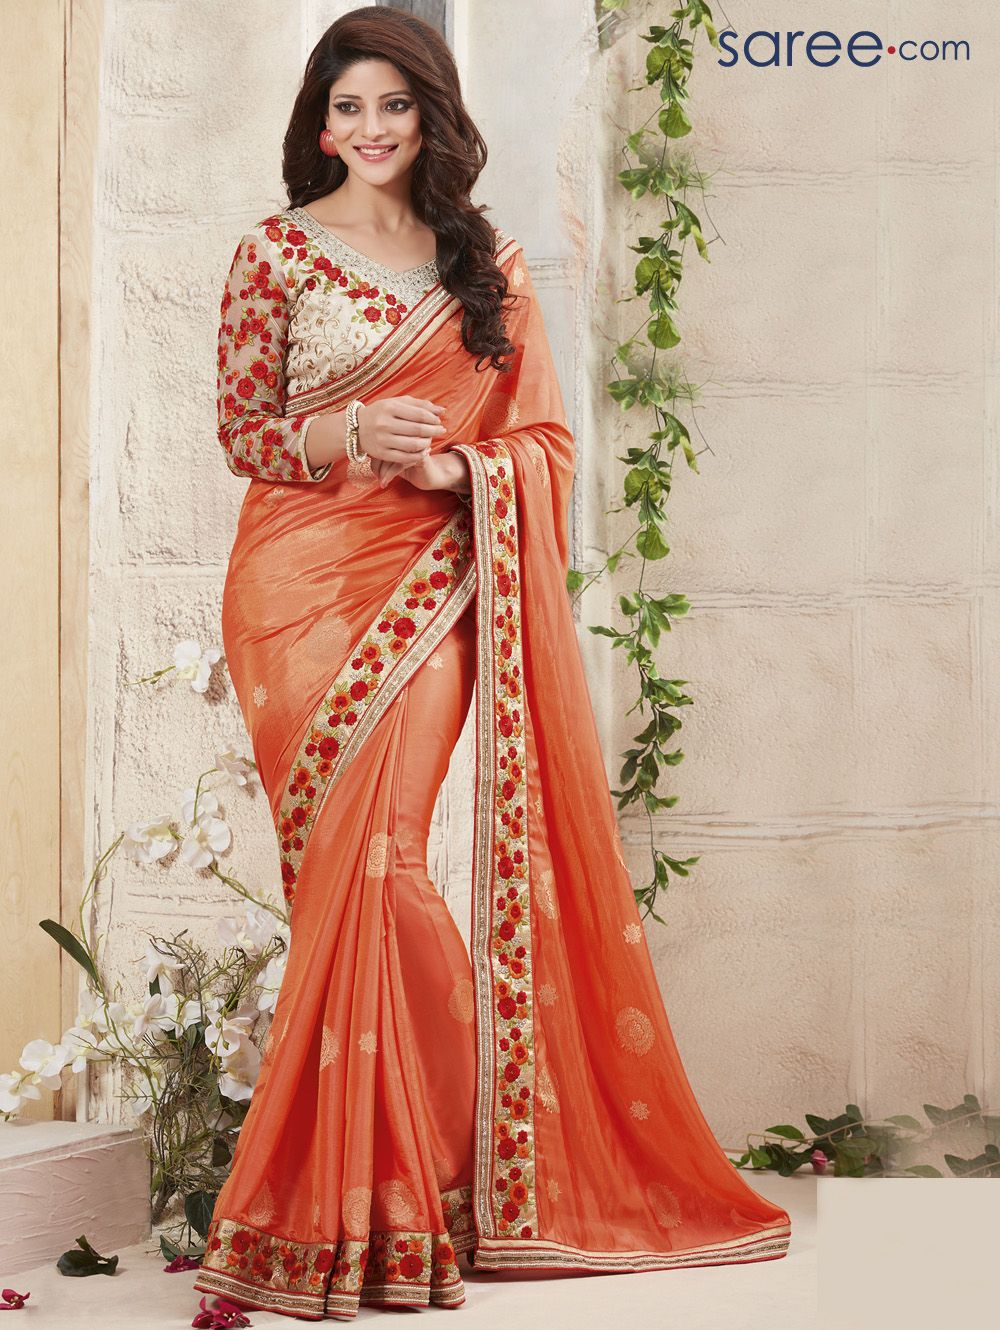 Peach color saree for wedding orange georgette saree with embroidery work  embroidery works